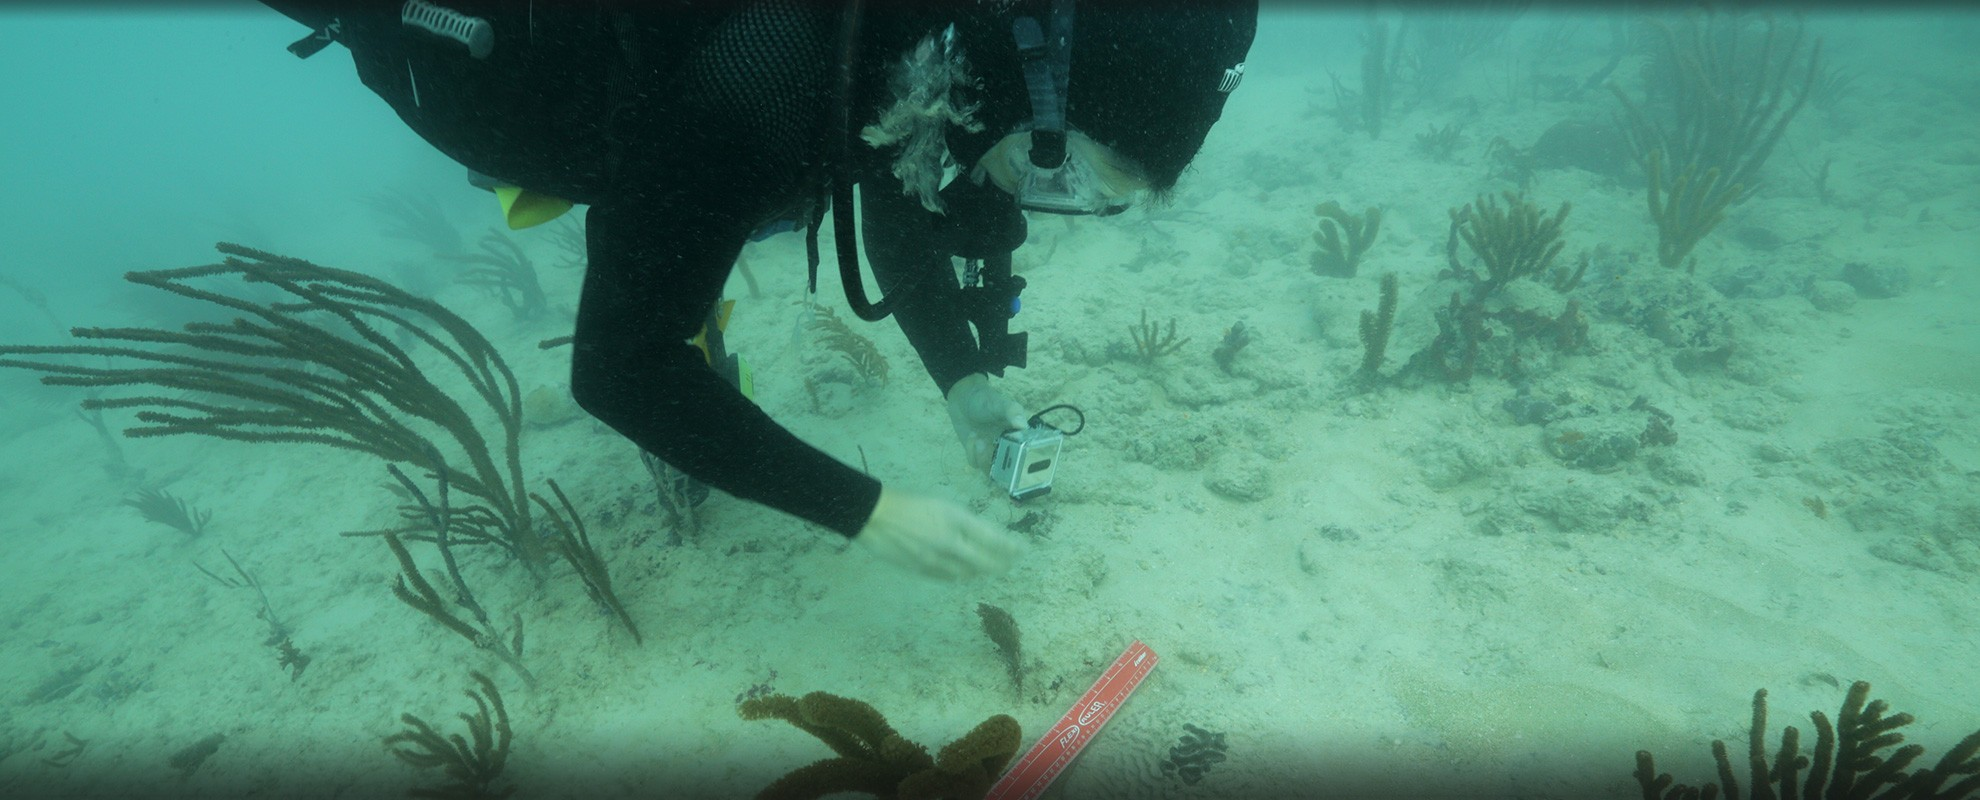 Rachel Silverstein, Executive Director and Waterkeeper of Miami Waterkeeper, examines coral suffocated by sediment following the Port of Miami dredging project.